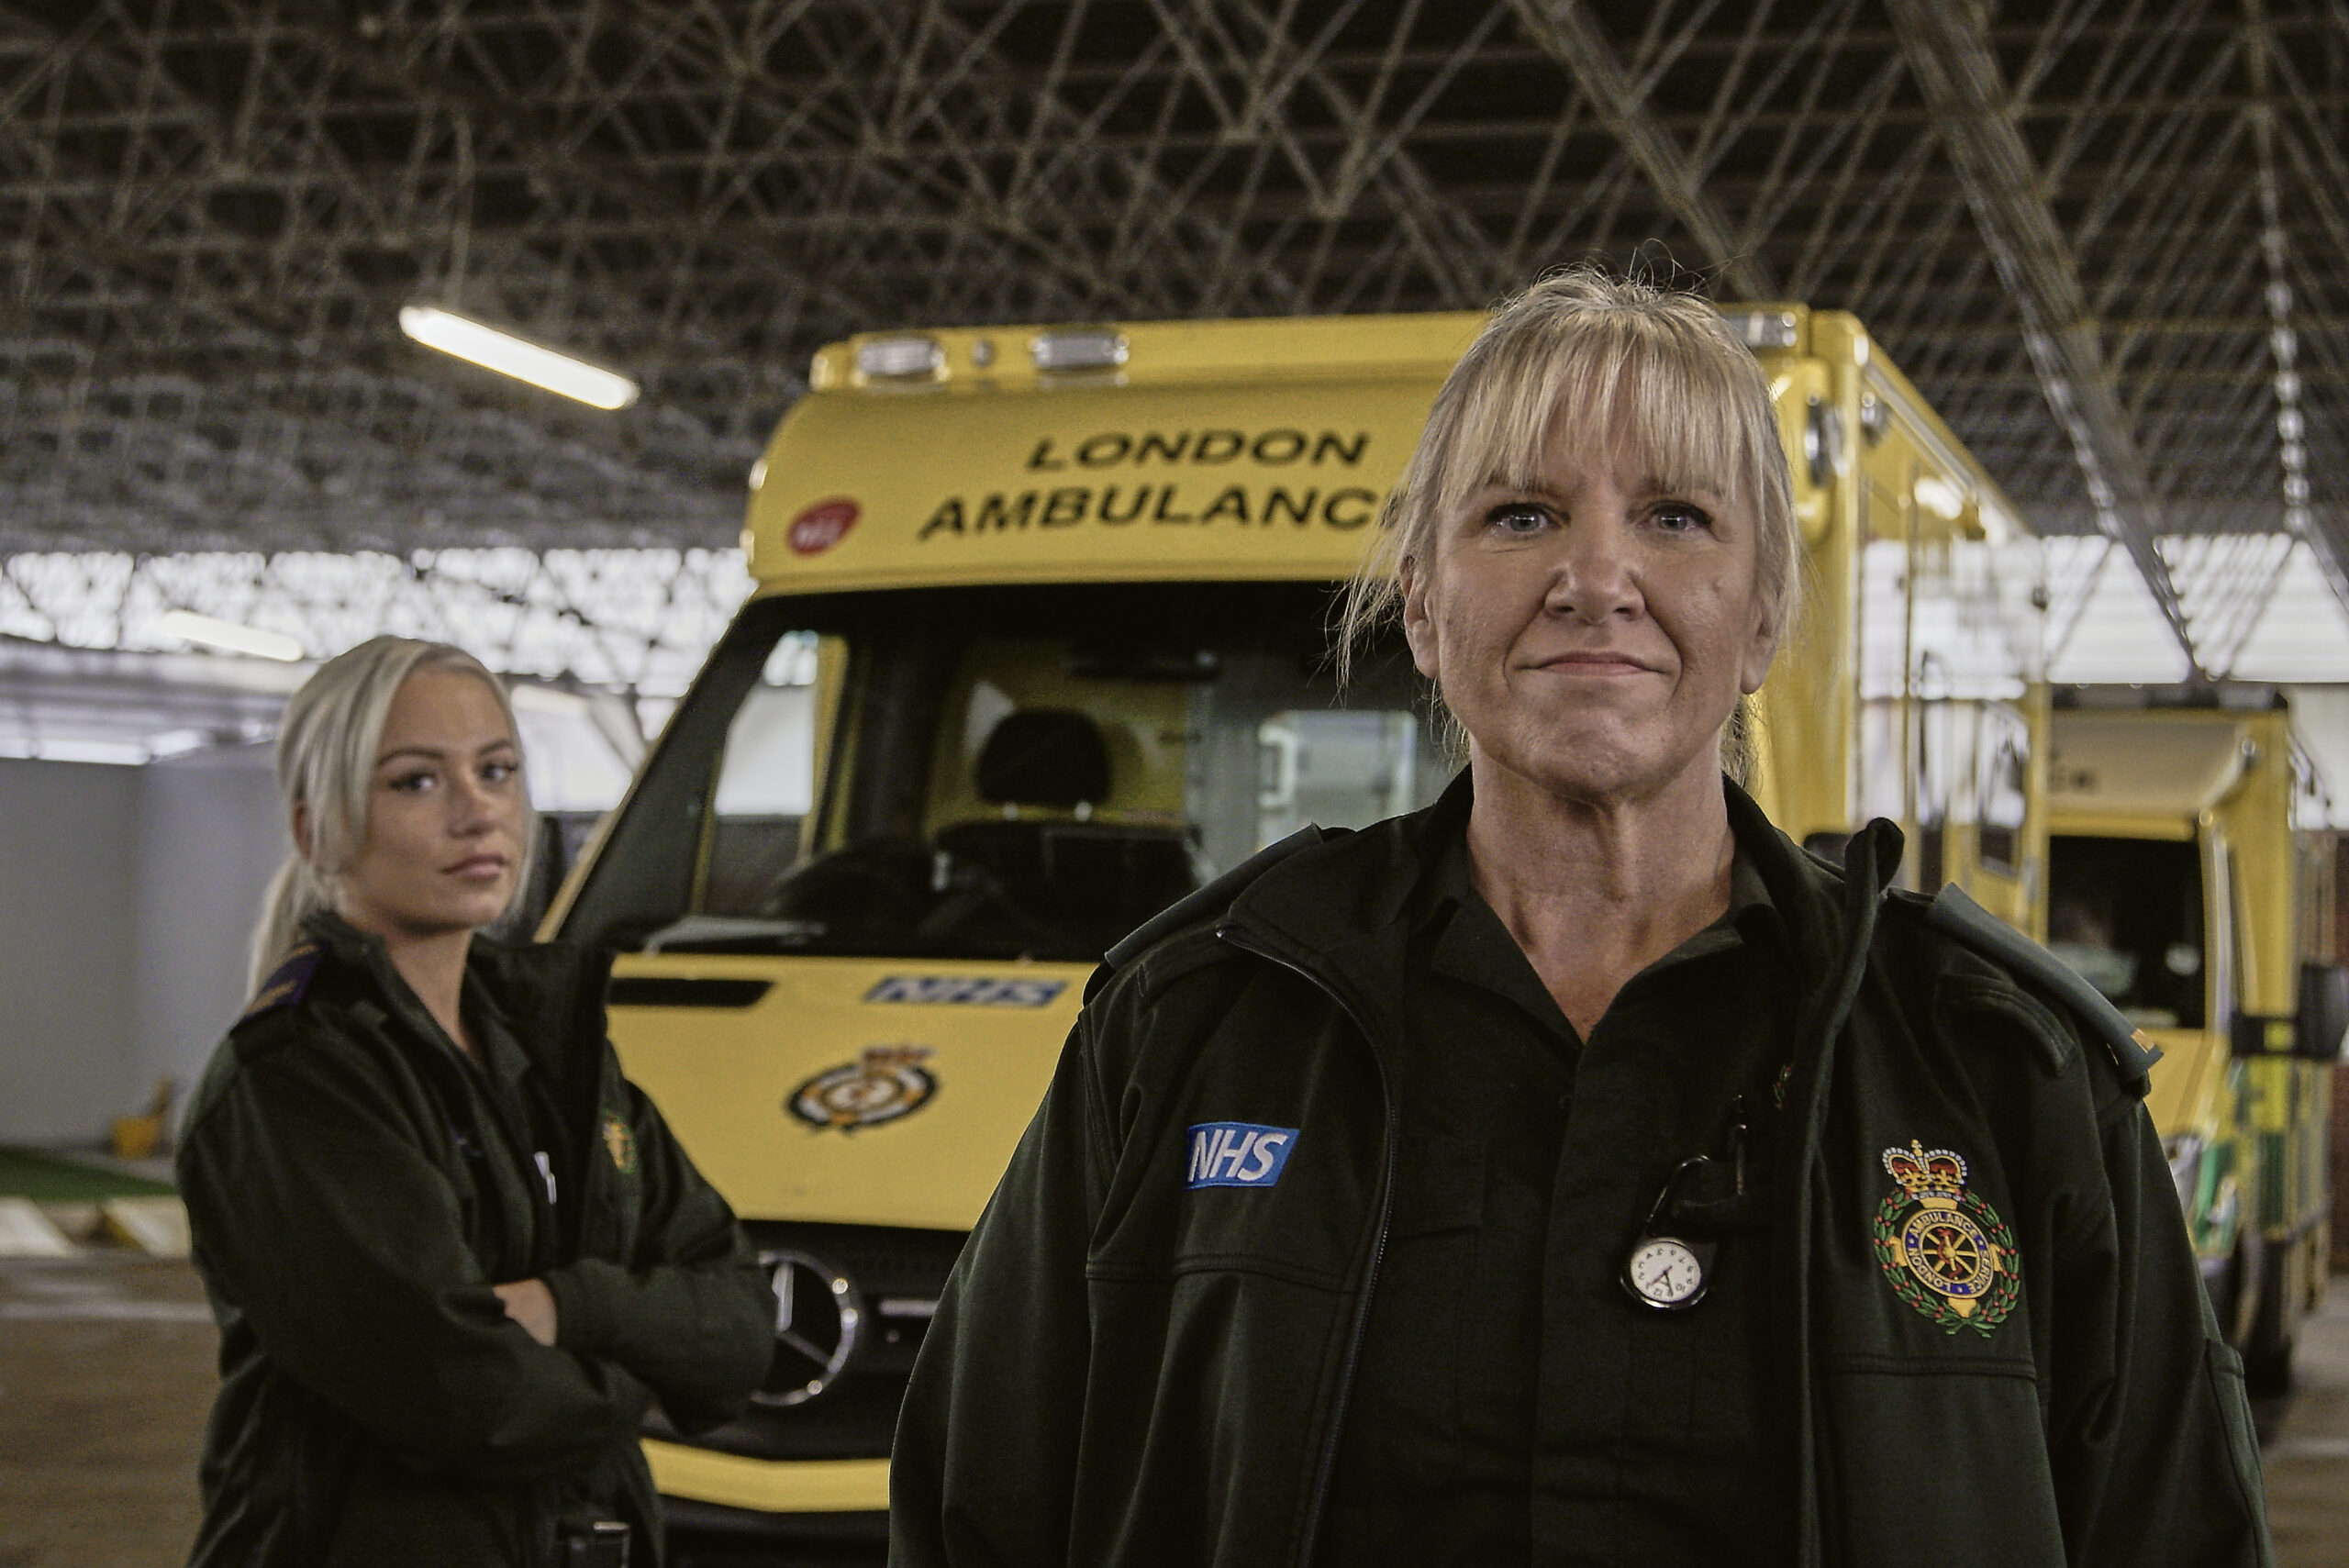 Mother and daughter team, Paramedic Nicky Brozek and EAC Maisie Brozek photographed at Bromley London Ambulance Service NHS Trust.